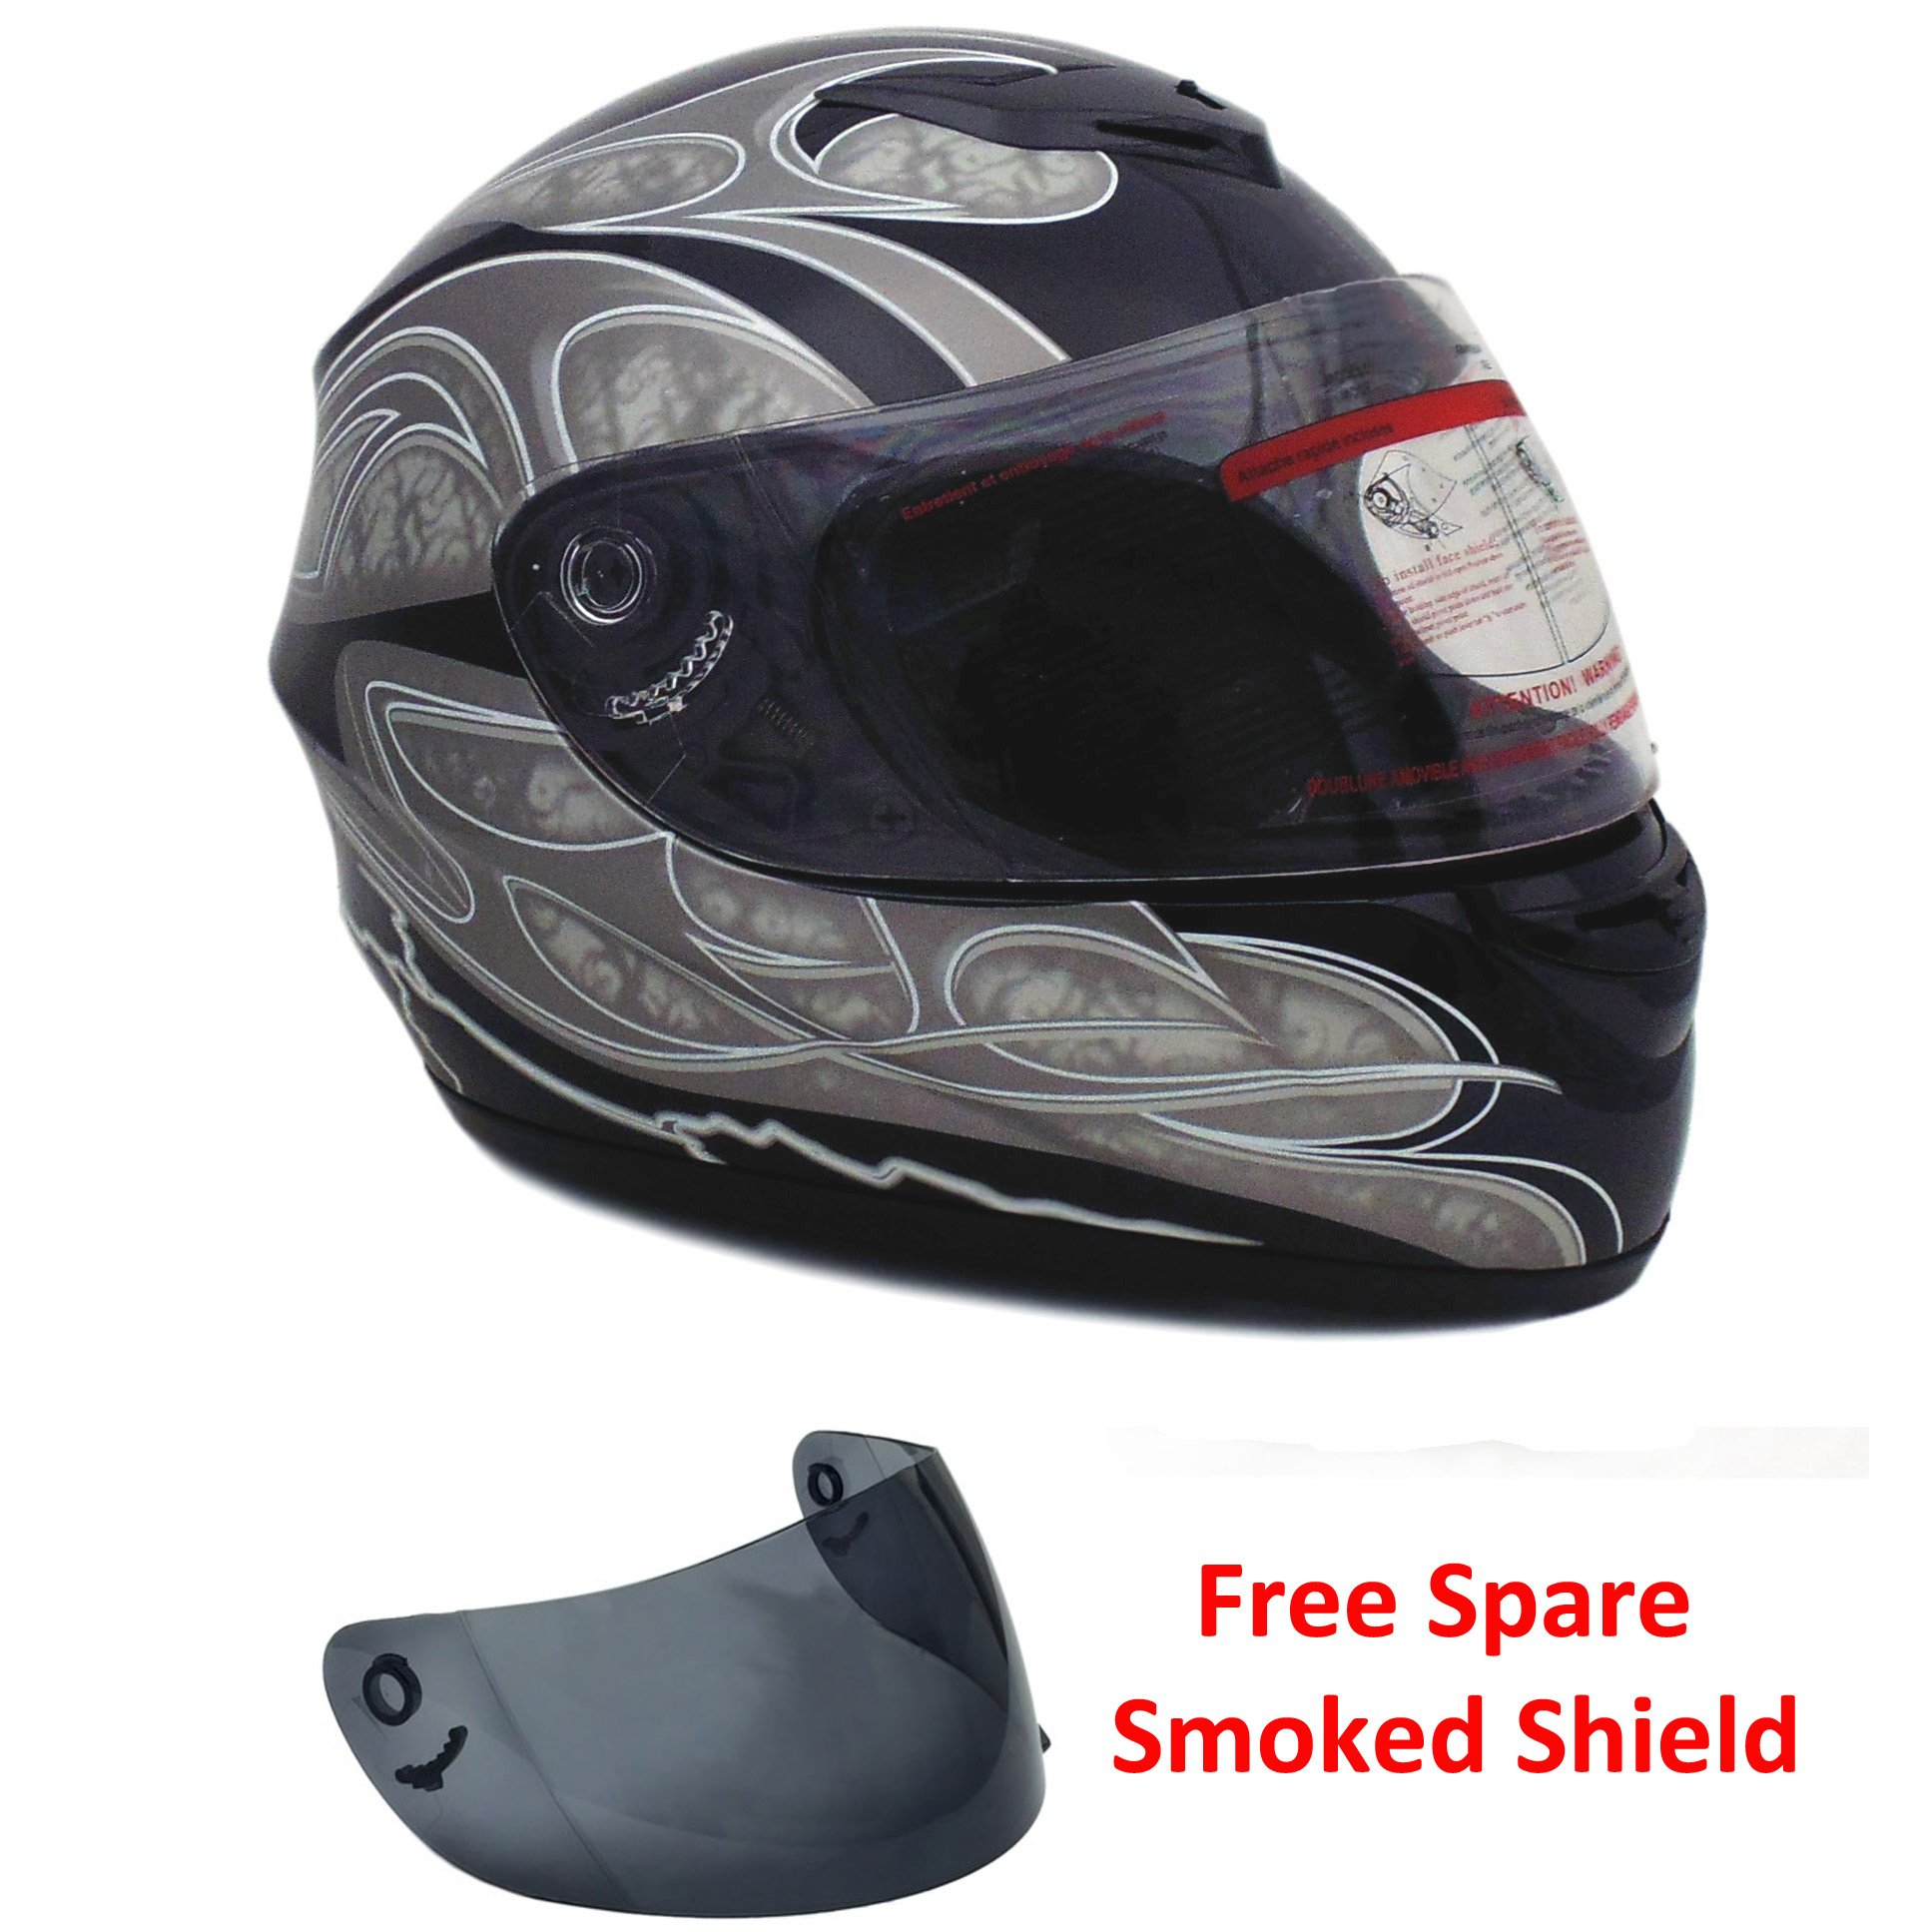 Motorcycle Full Face Helmet DOT Street Legal 2 Visors Comes with Clear Shield and Free Smoked Shield (XL, Gray)